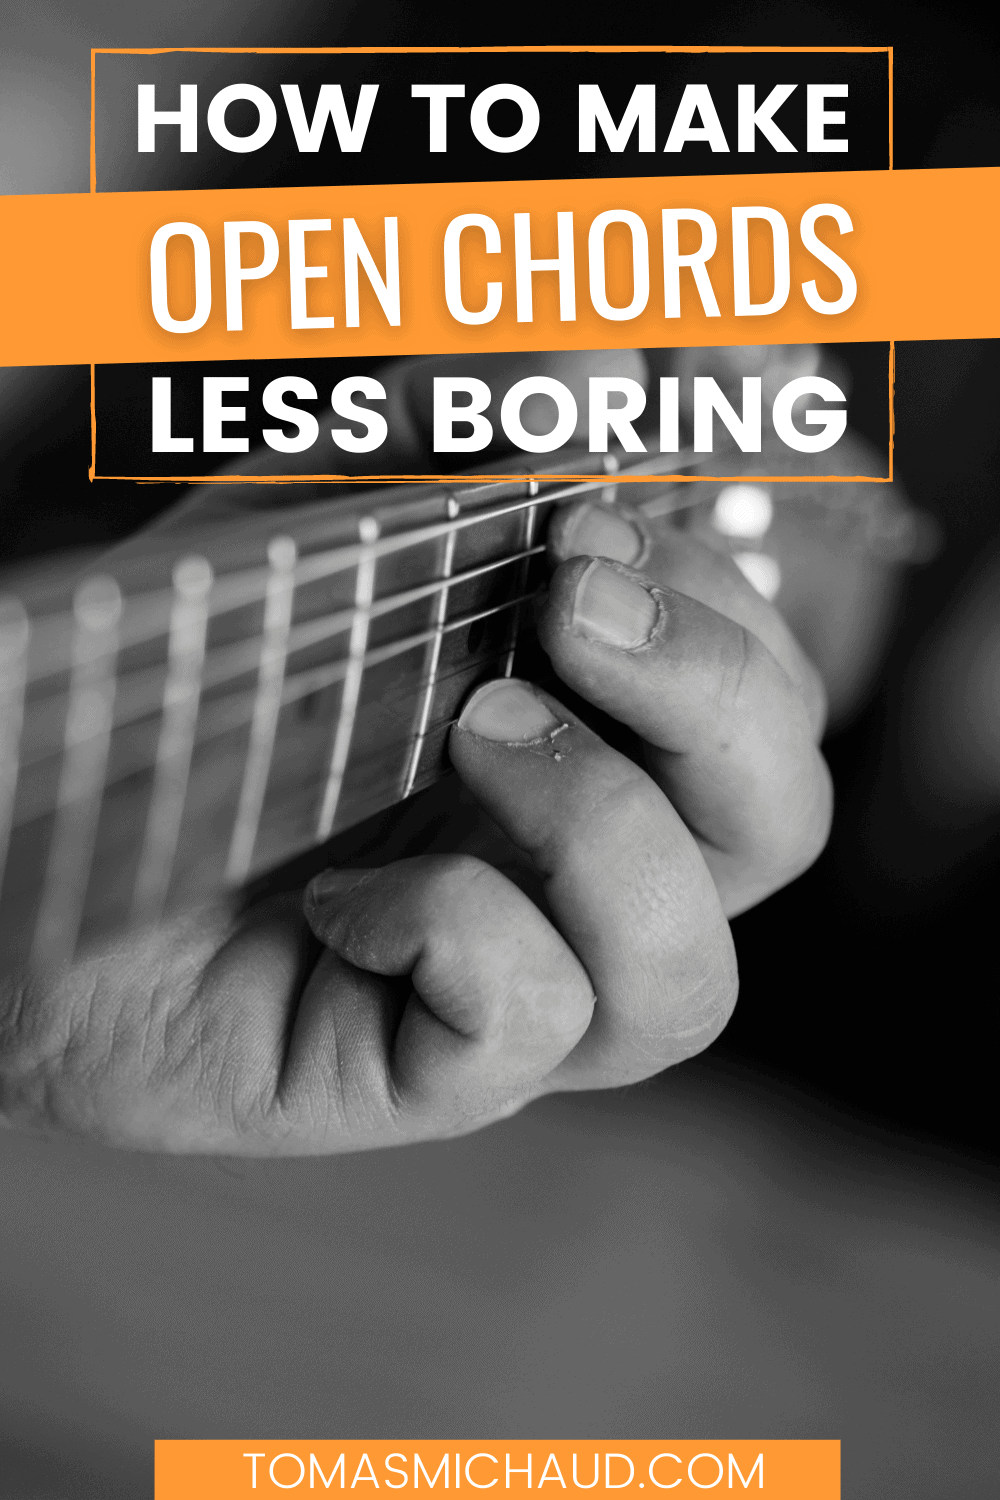 How to Make Open Chords Less Boring